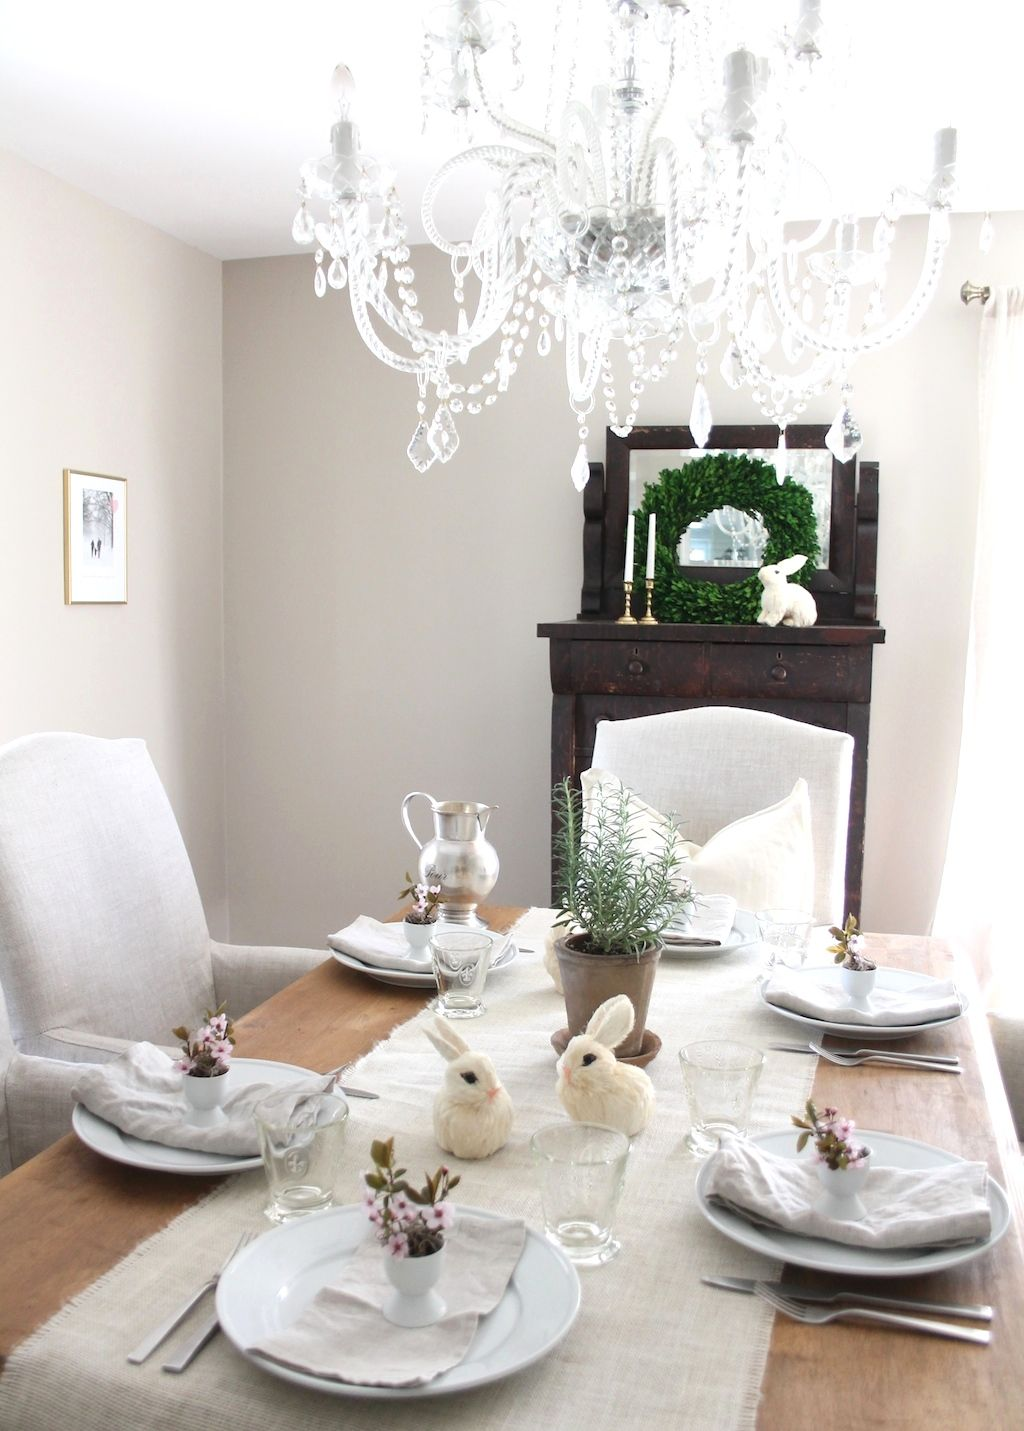 Restaurant table setting ideas - A Simple Easter Table Setting